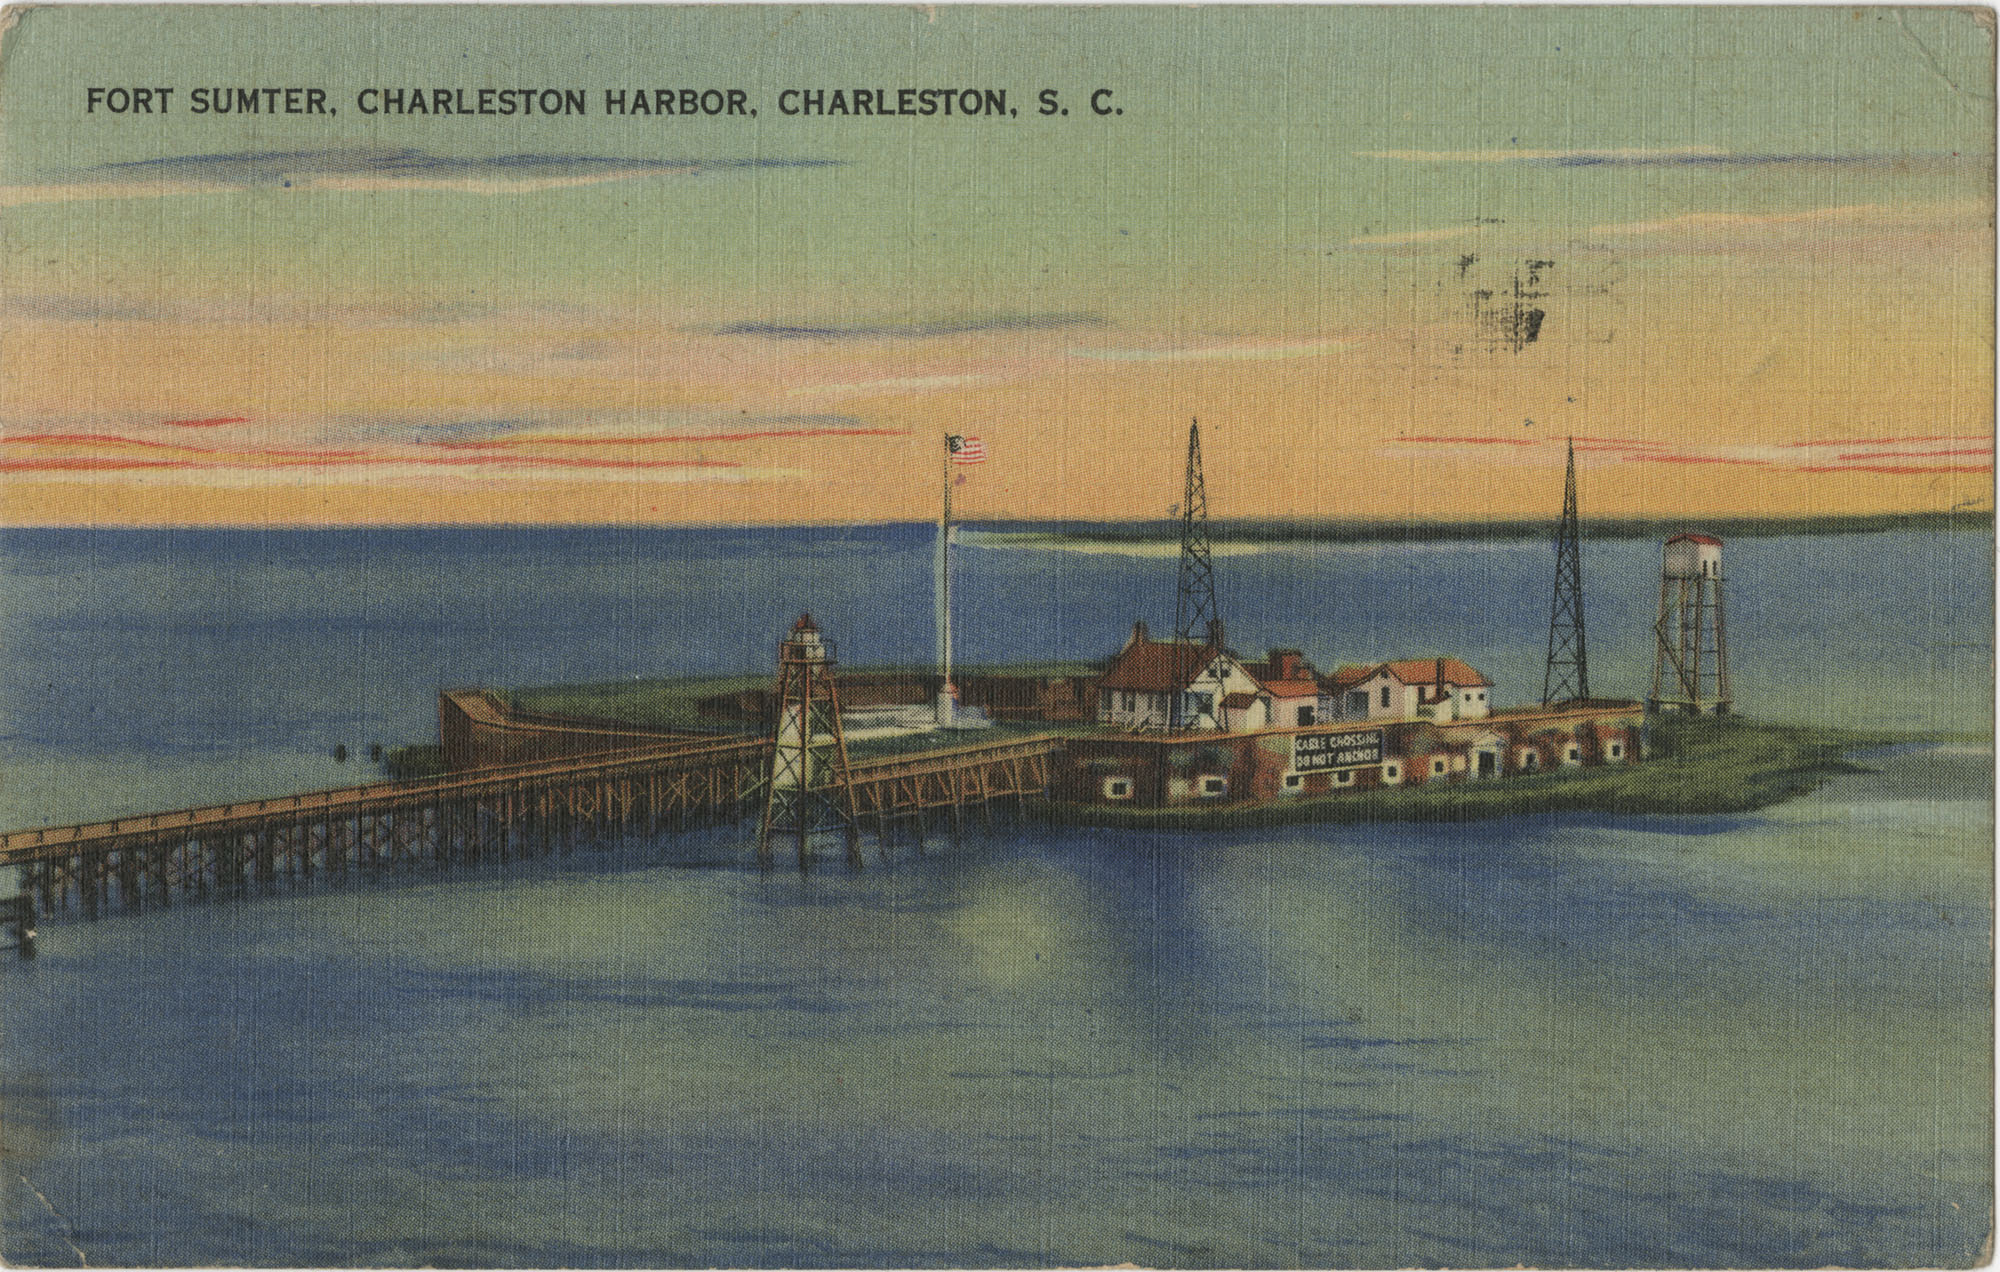 Fort Sumter, Charleston Harbor, Charleston, S.C.